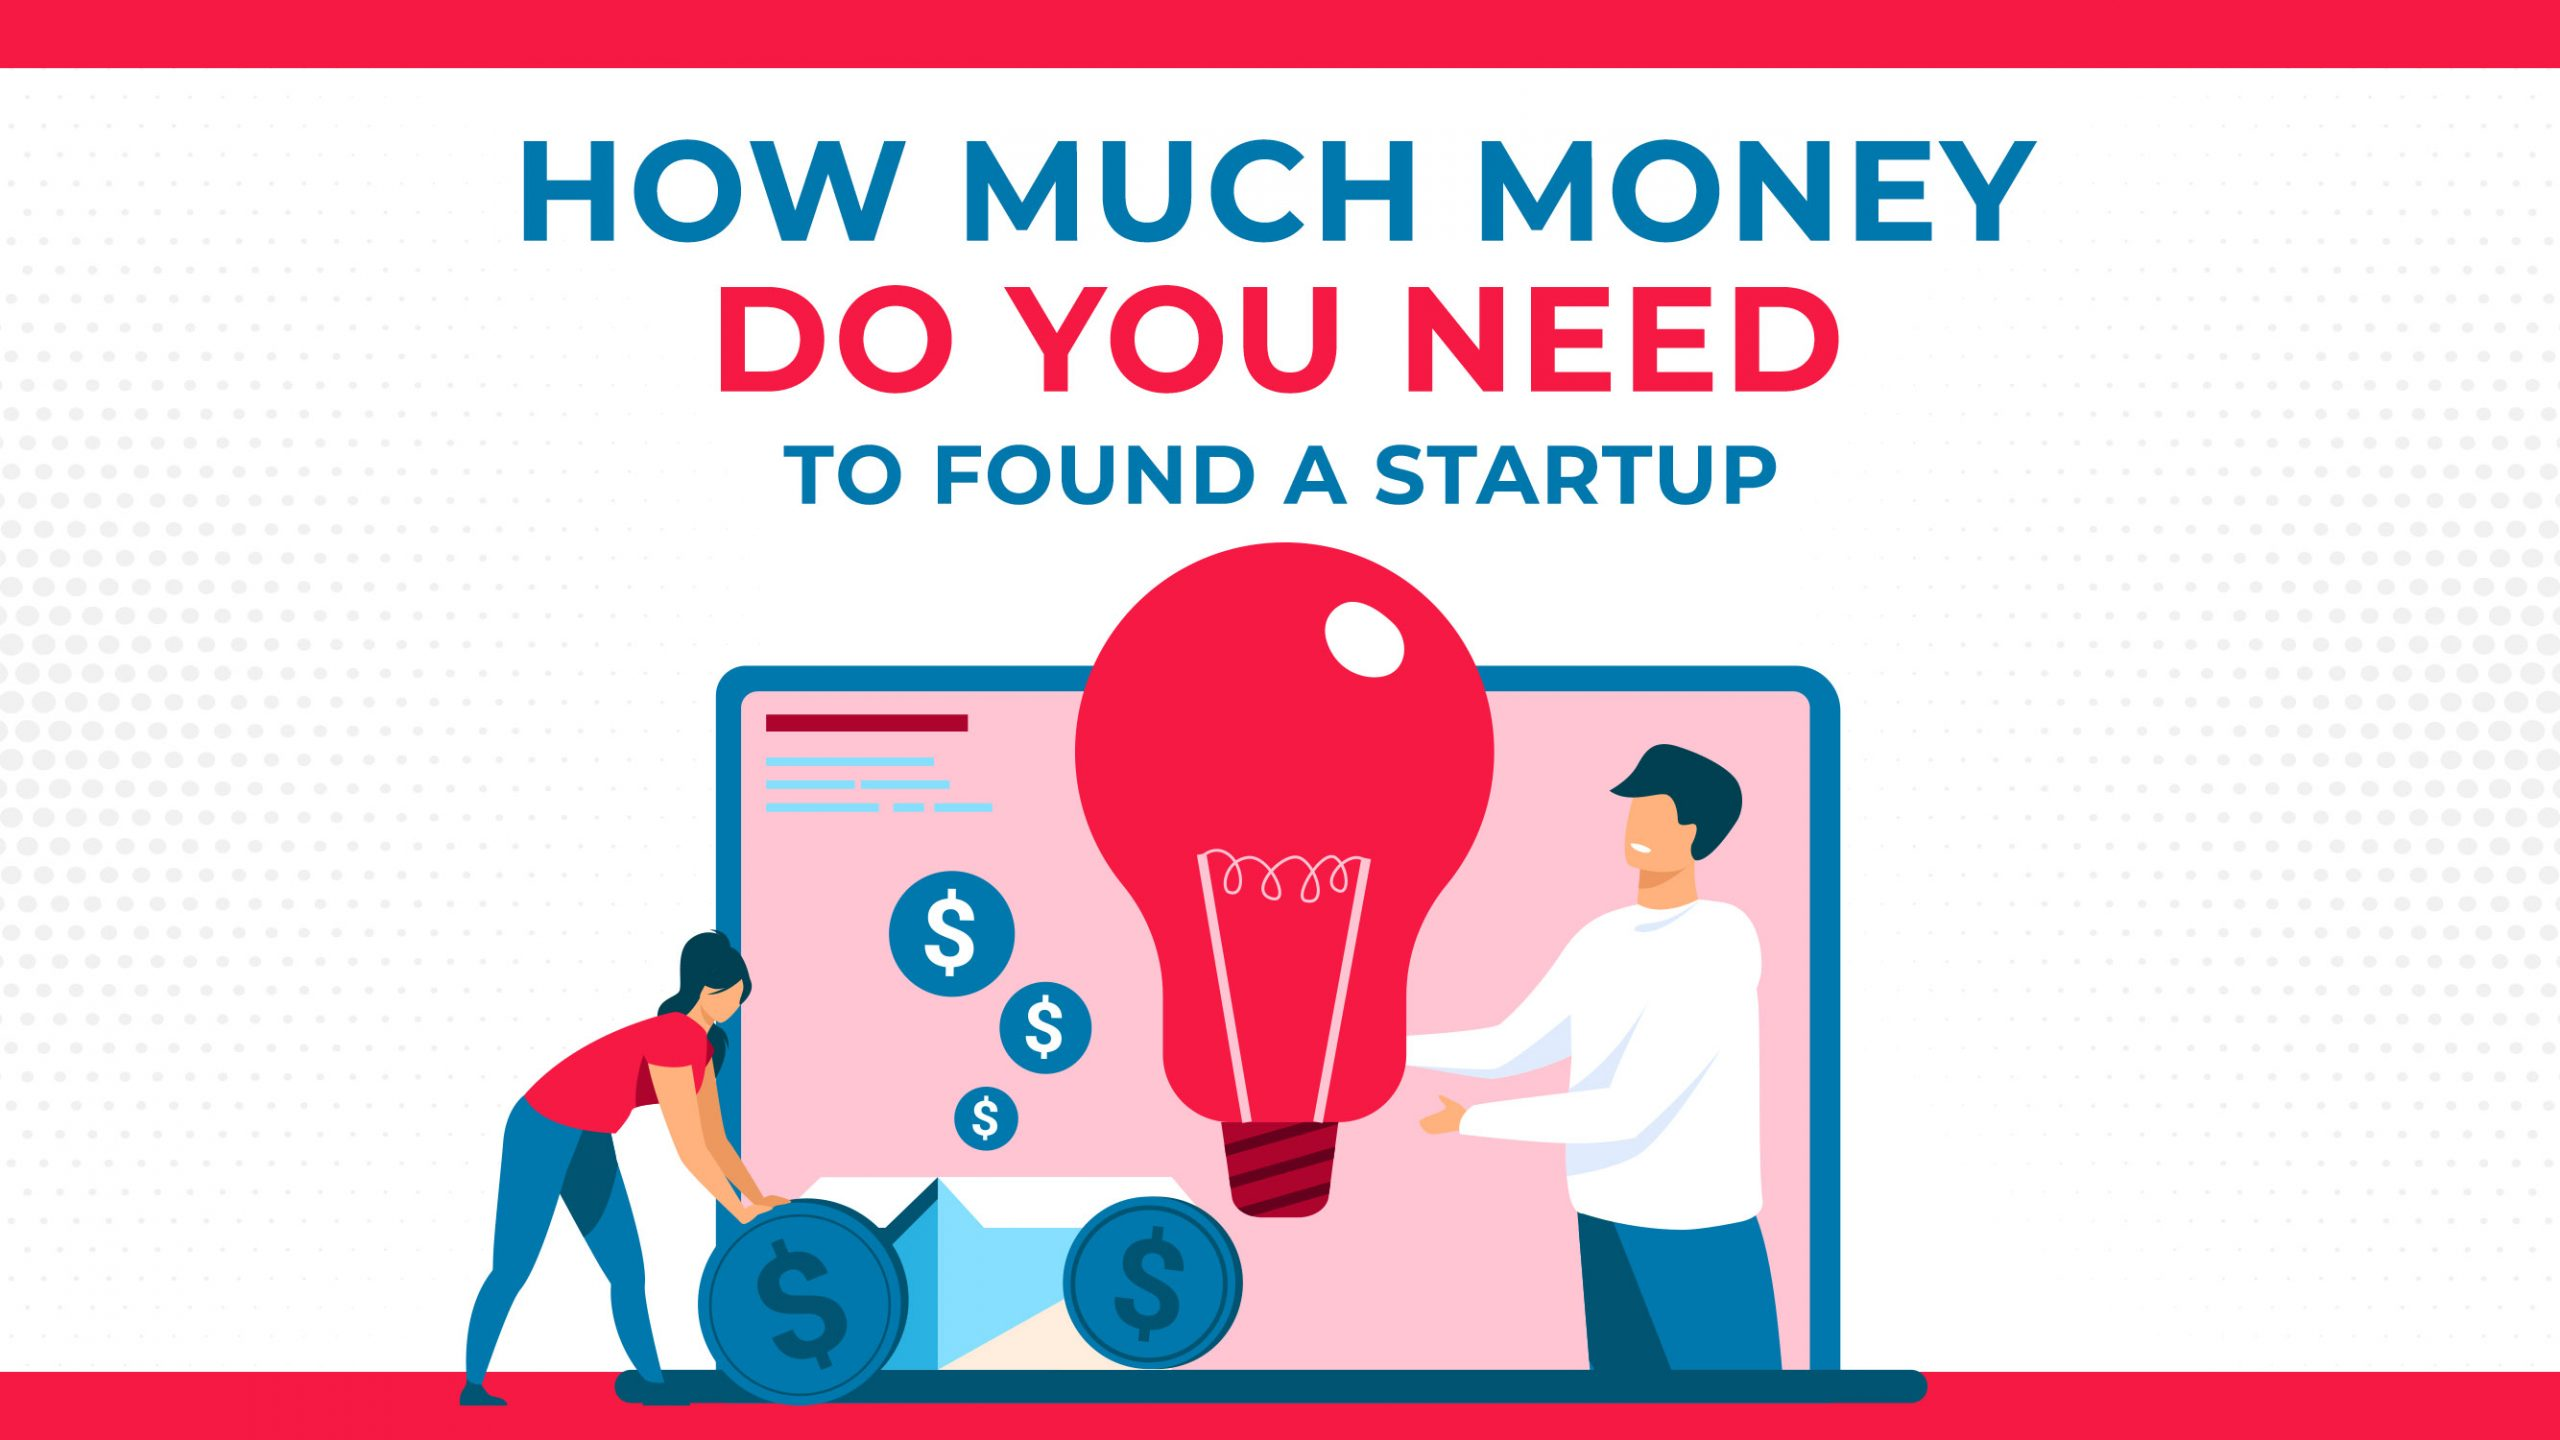 How Much Money Do You Need To Fund A Startup?